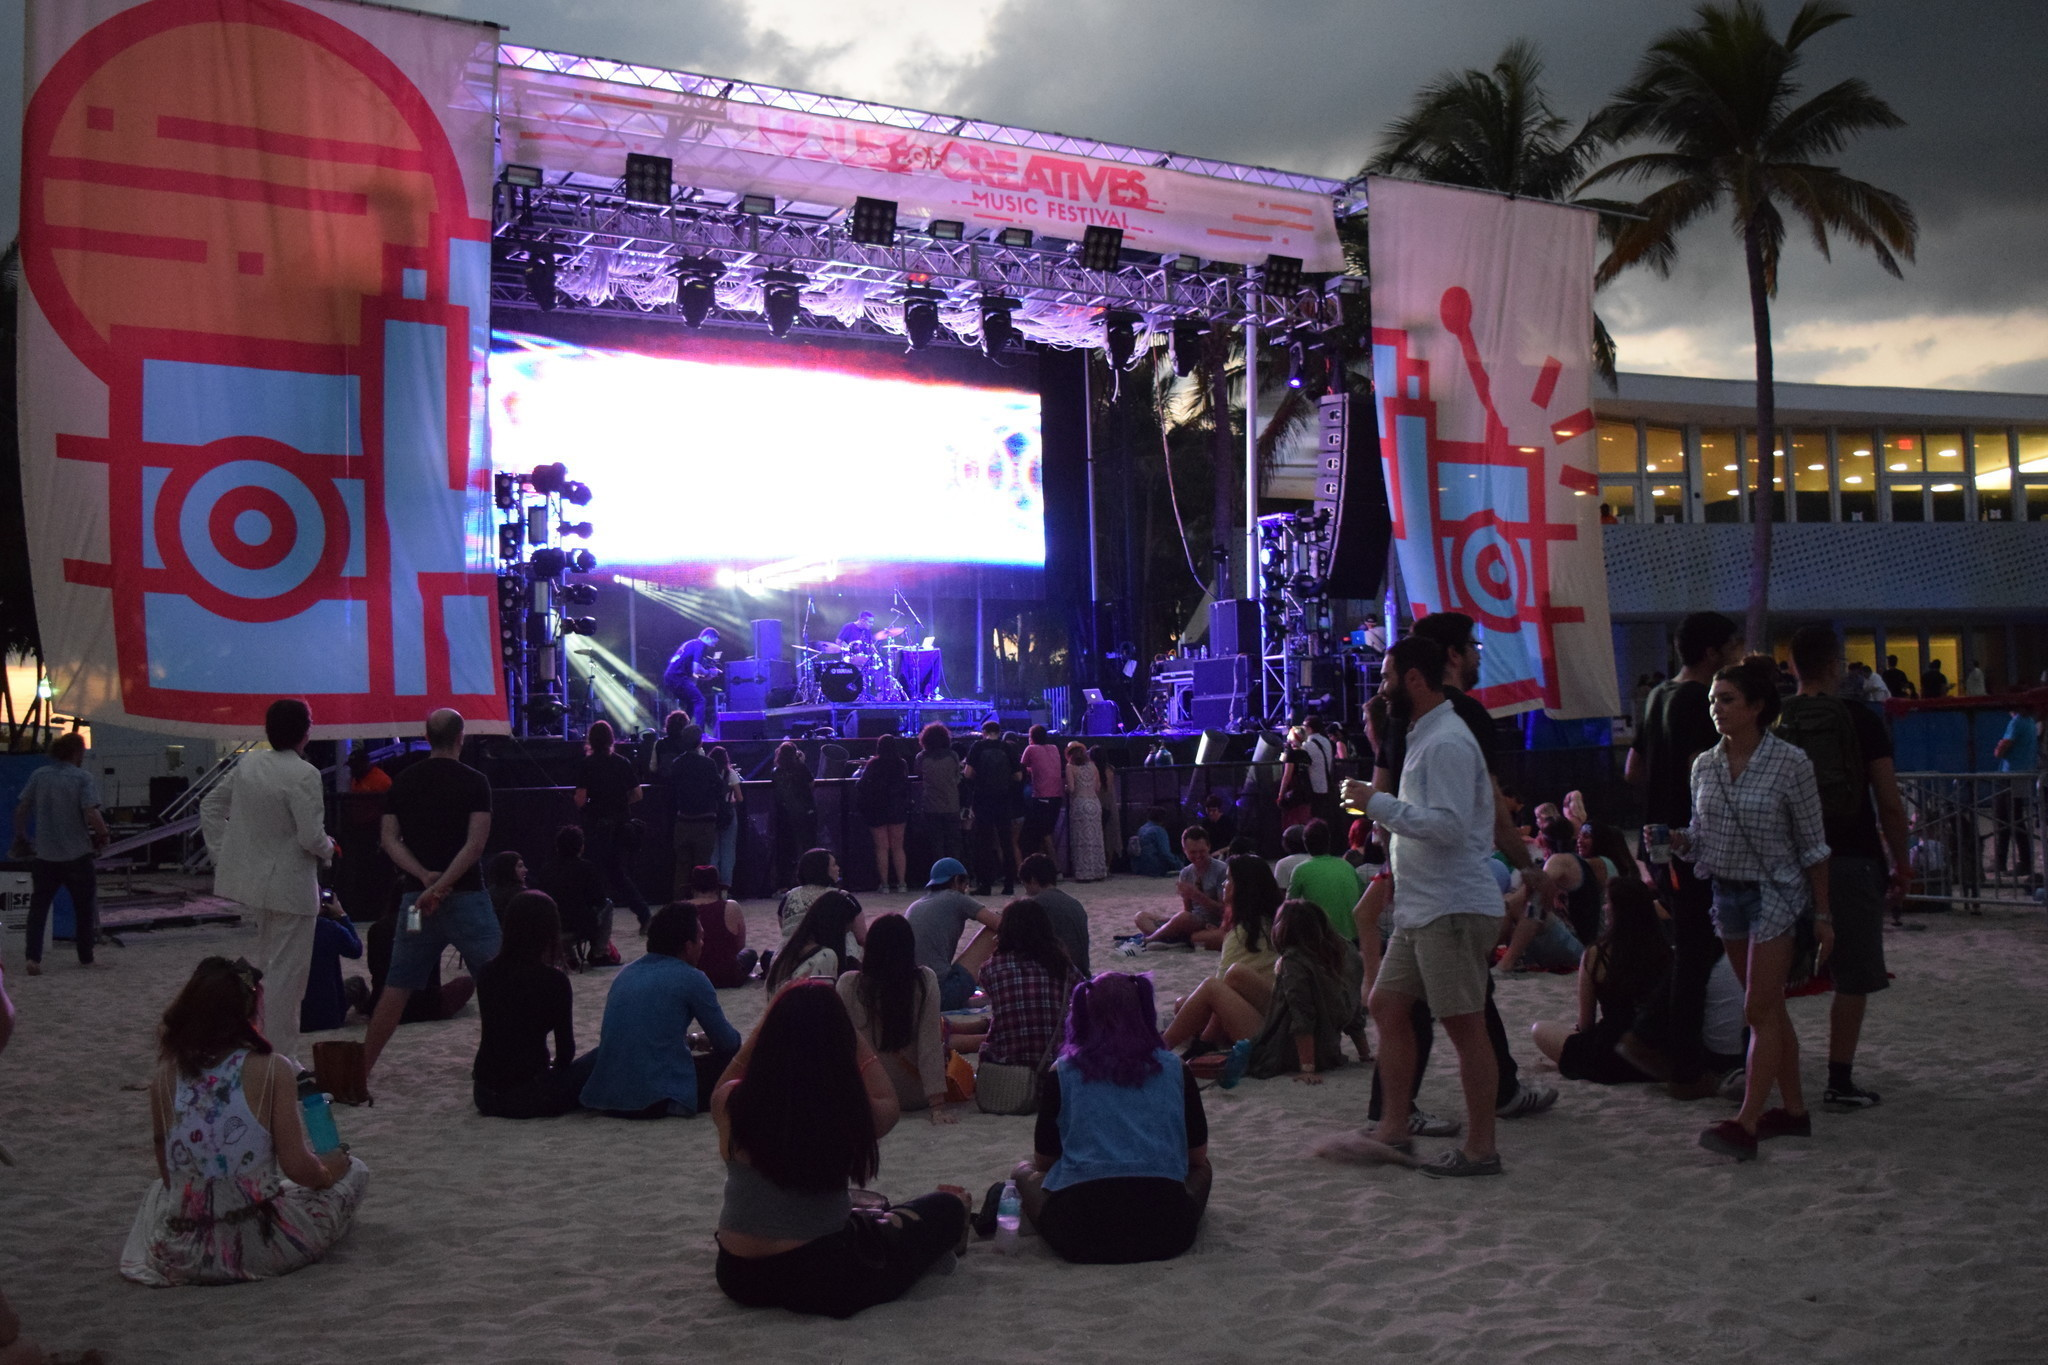 House of creatives music festival in miami beach for House music events